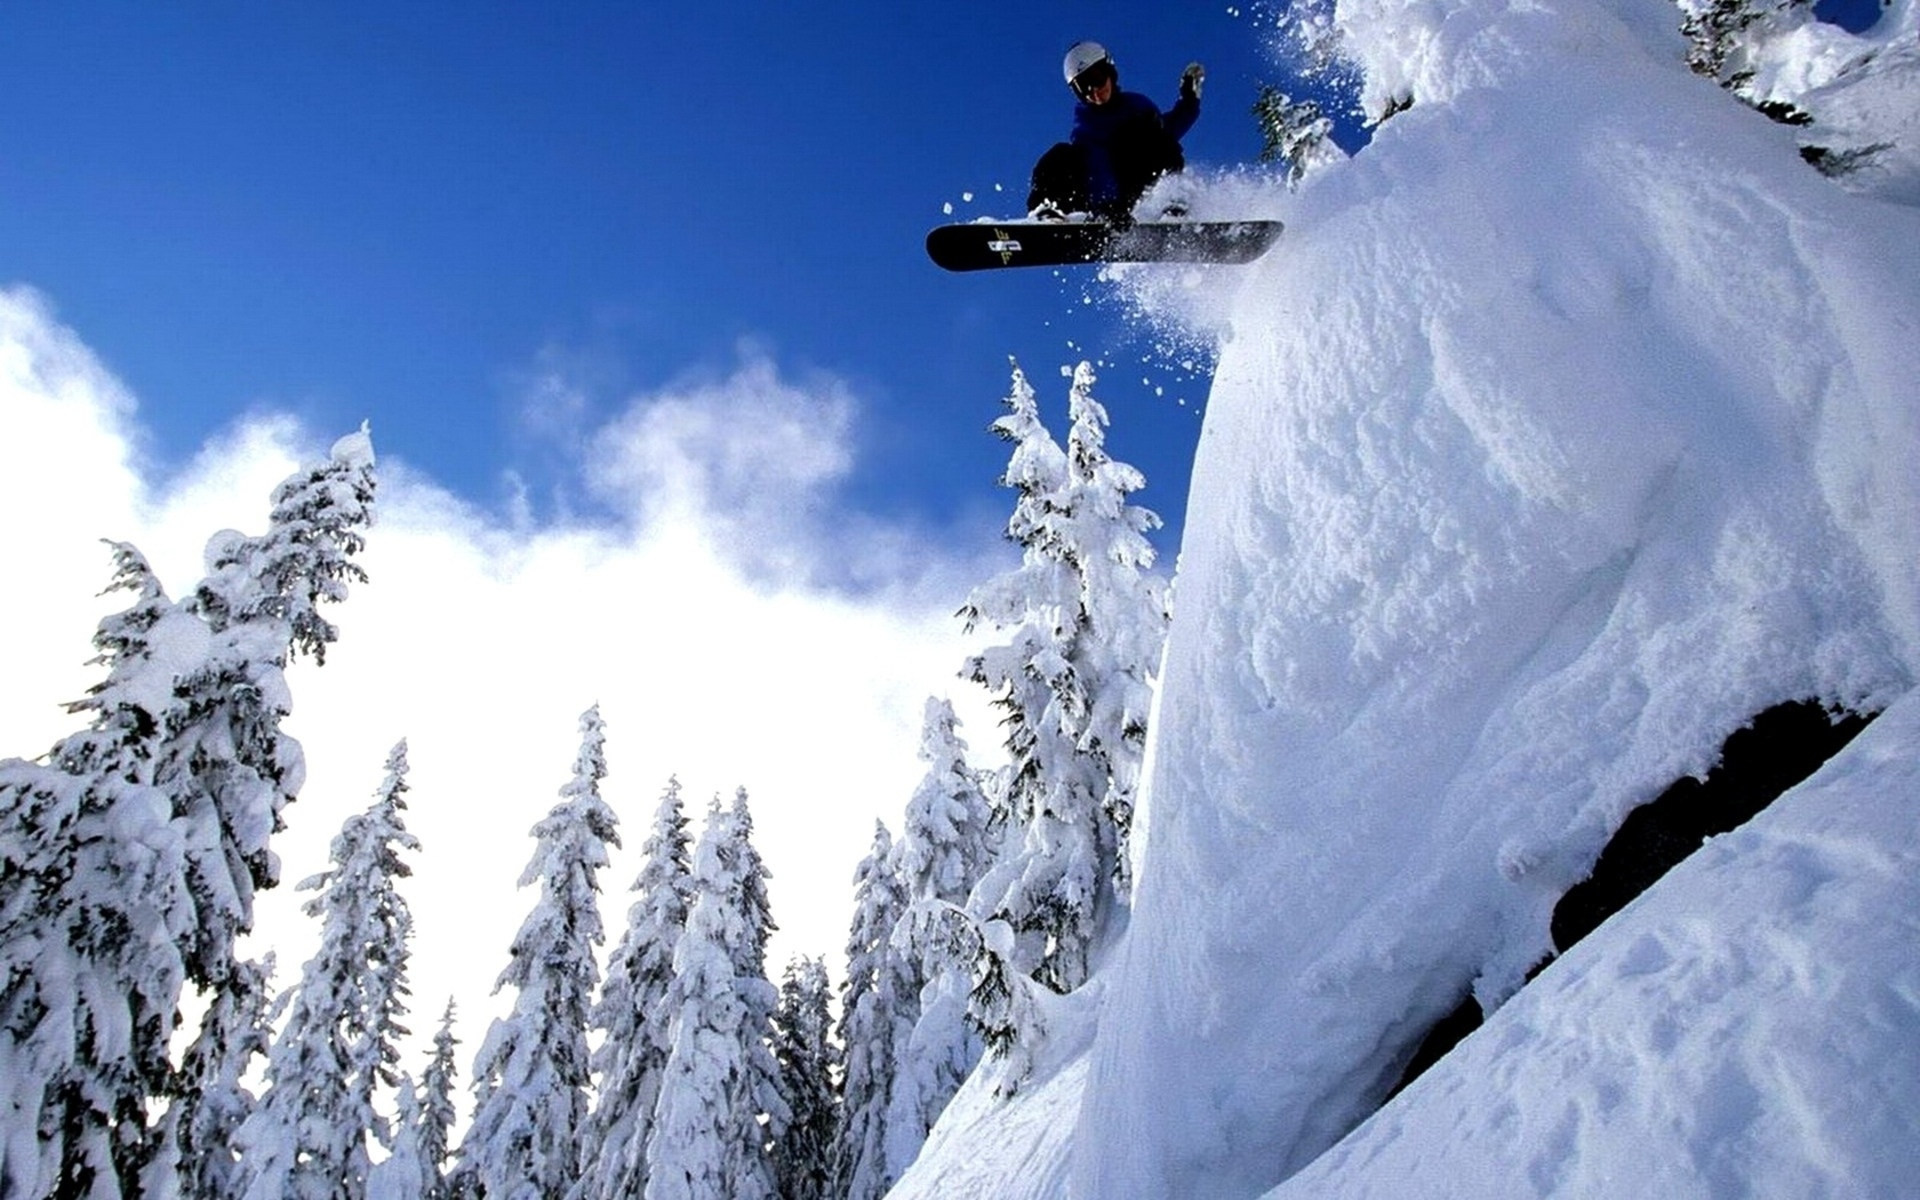 extreme snowboarding wallpapers - photo #20